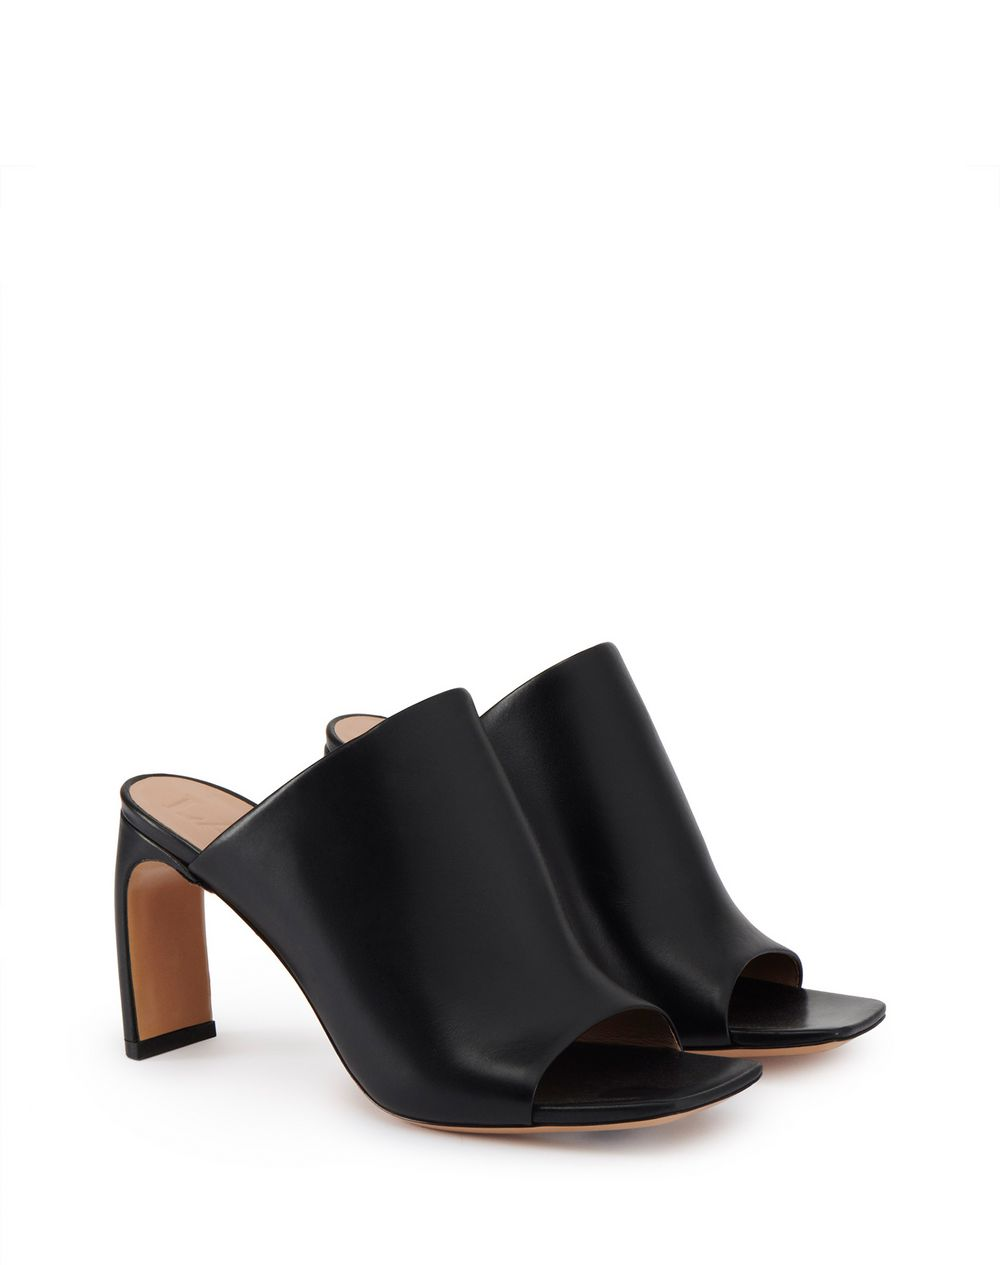 J MULES IN CALFSKIN LEATHER  - Lanvin